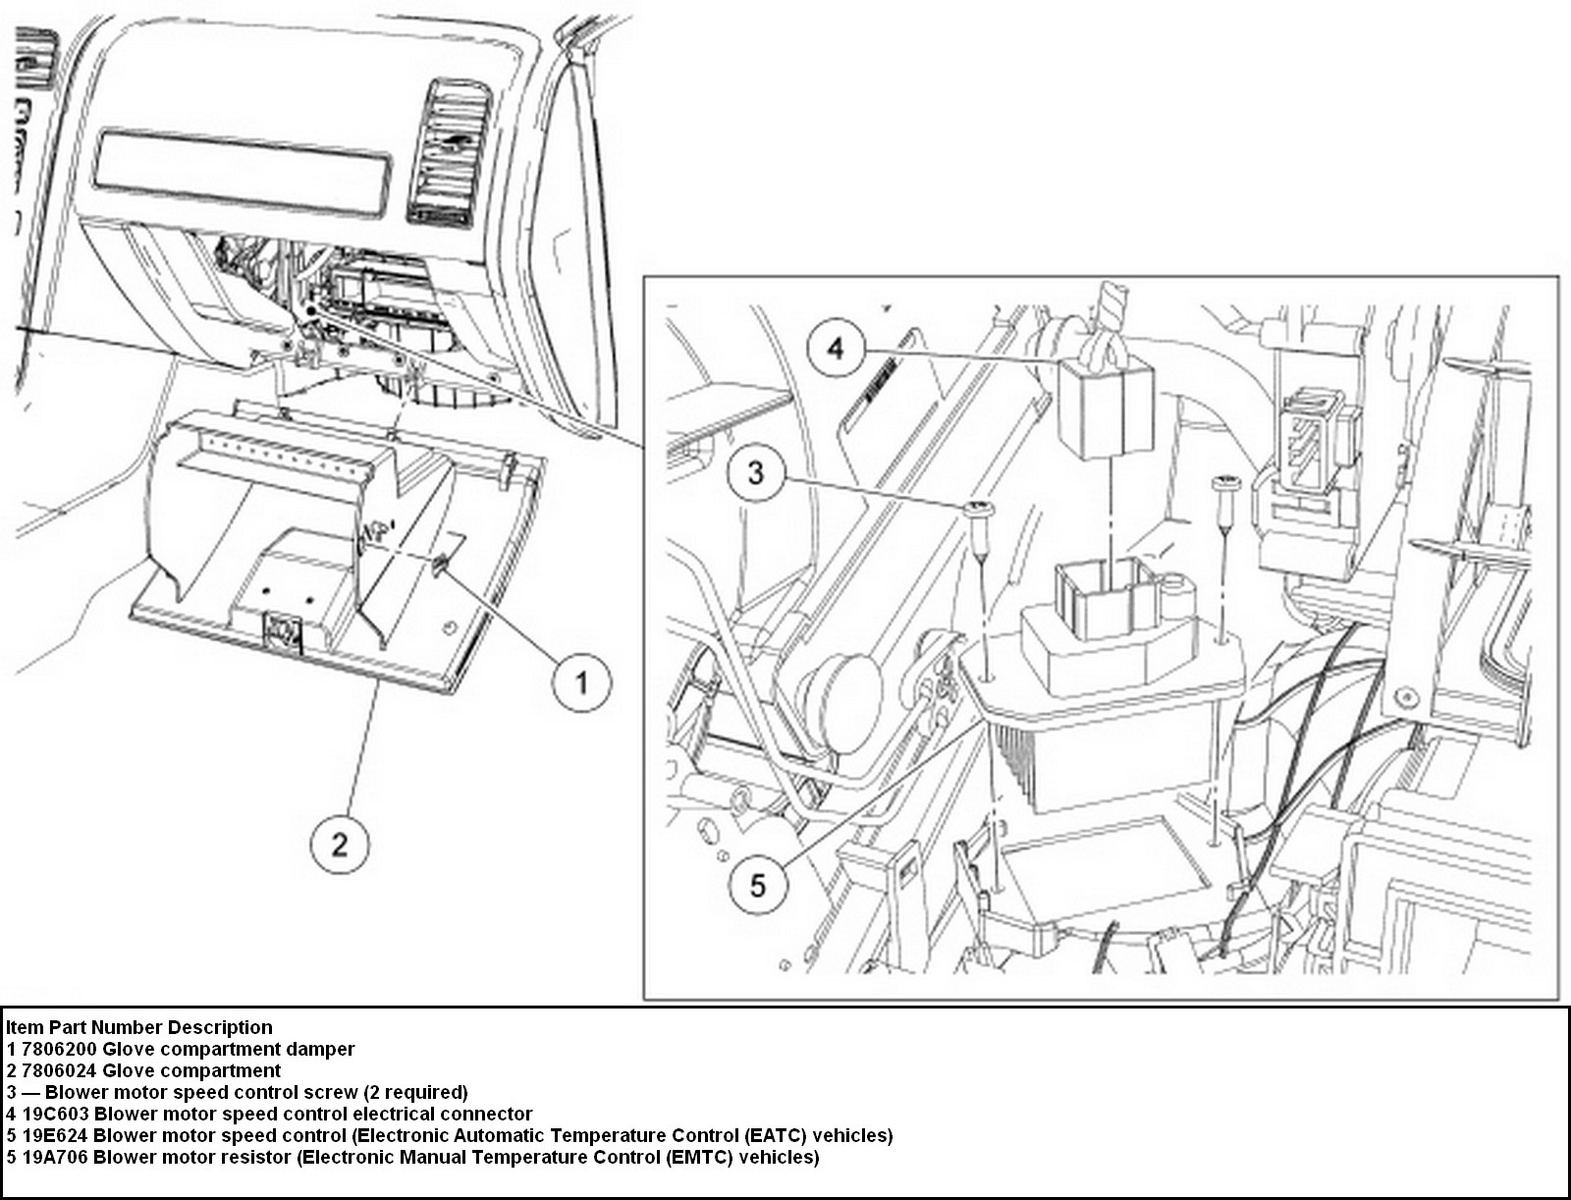 Ford 400 Engine Diagram Wiring Library 2011 Escape Radio 1 Answer